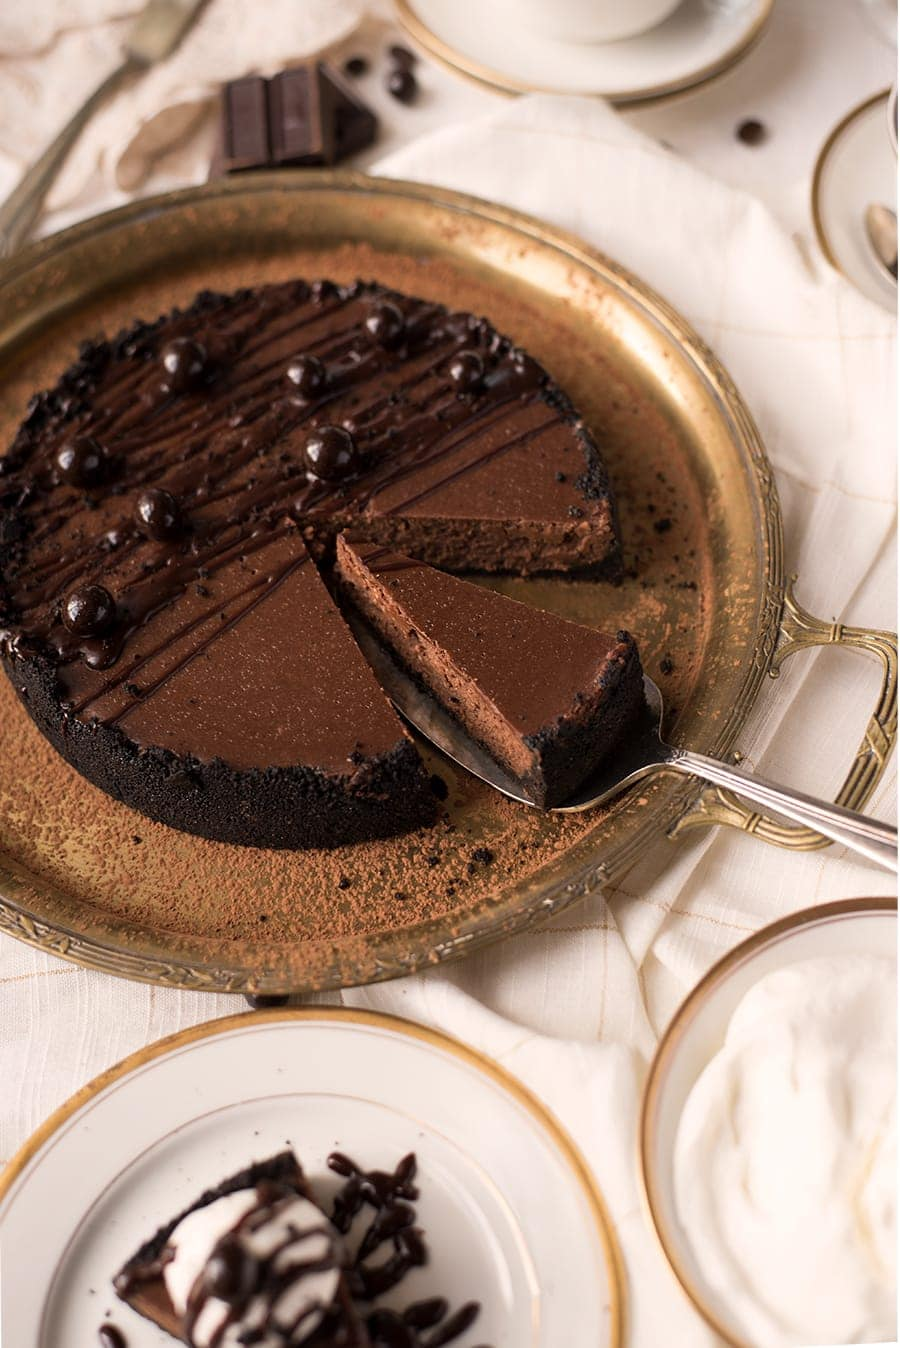 Tray with Chocolate Espresso Cheesecake